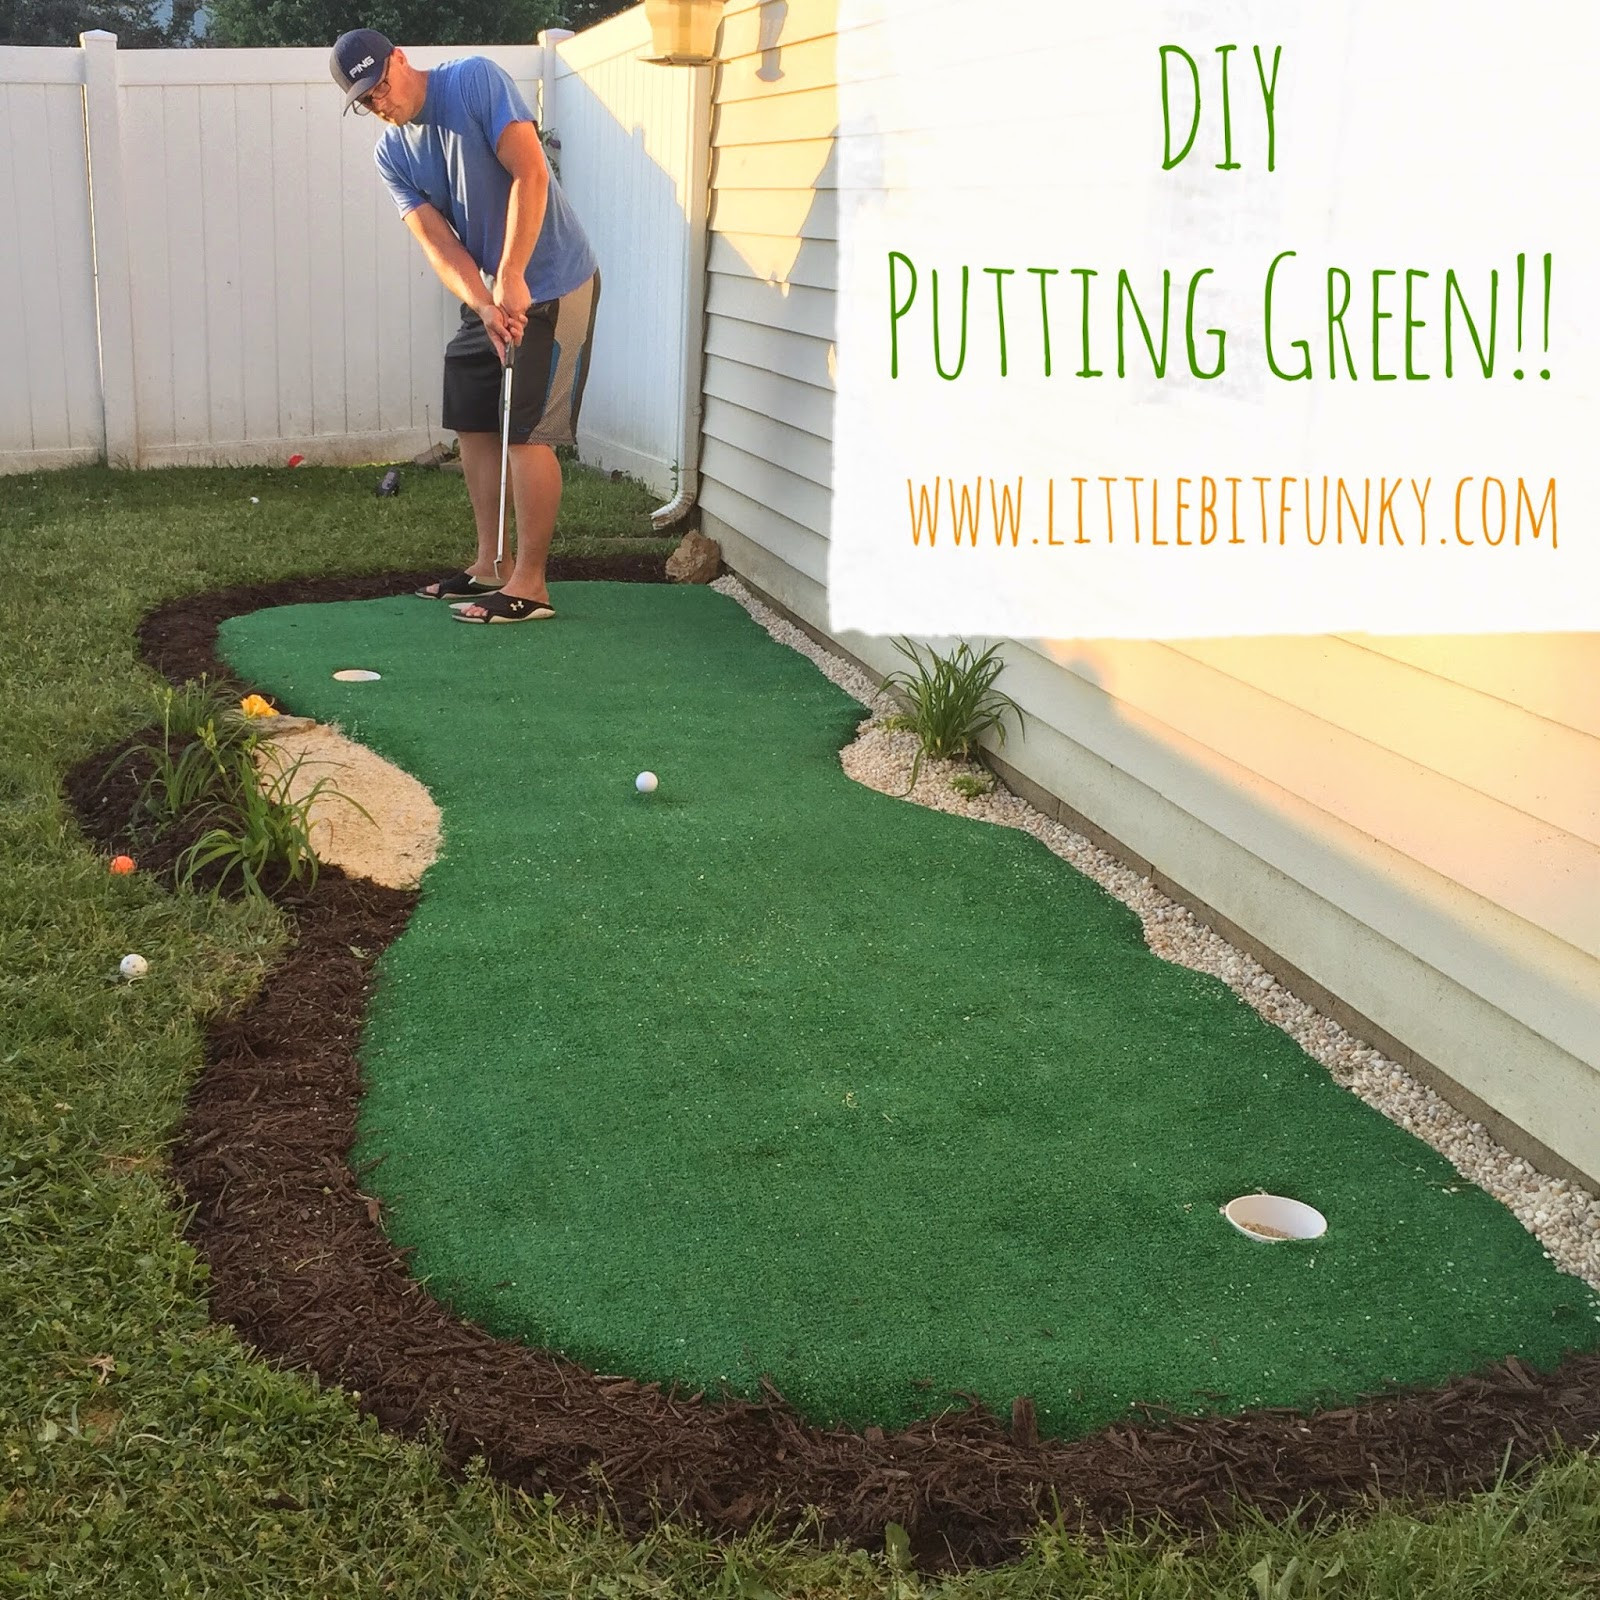 Best ideas about Backyard Putting Green . Save or Pin Little Bit Funky How to make a backyard putting green Now.